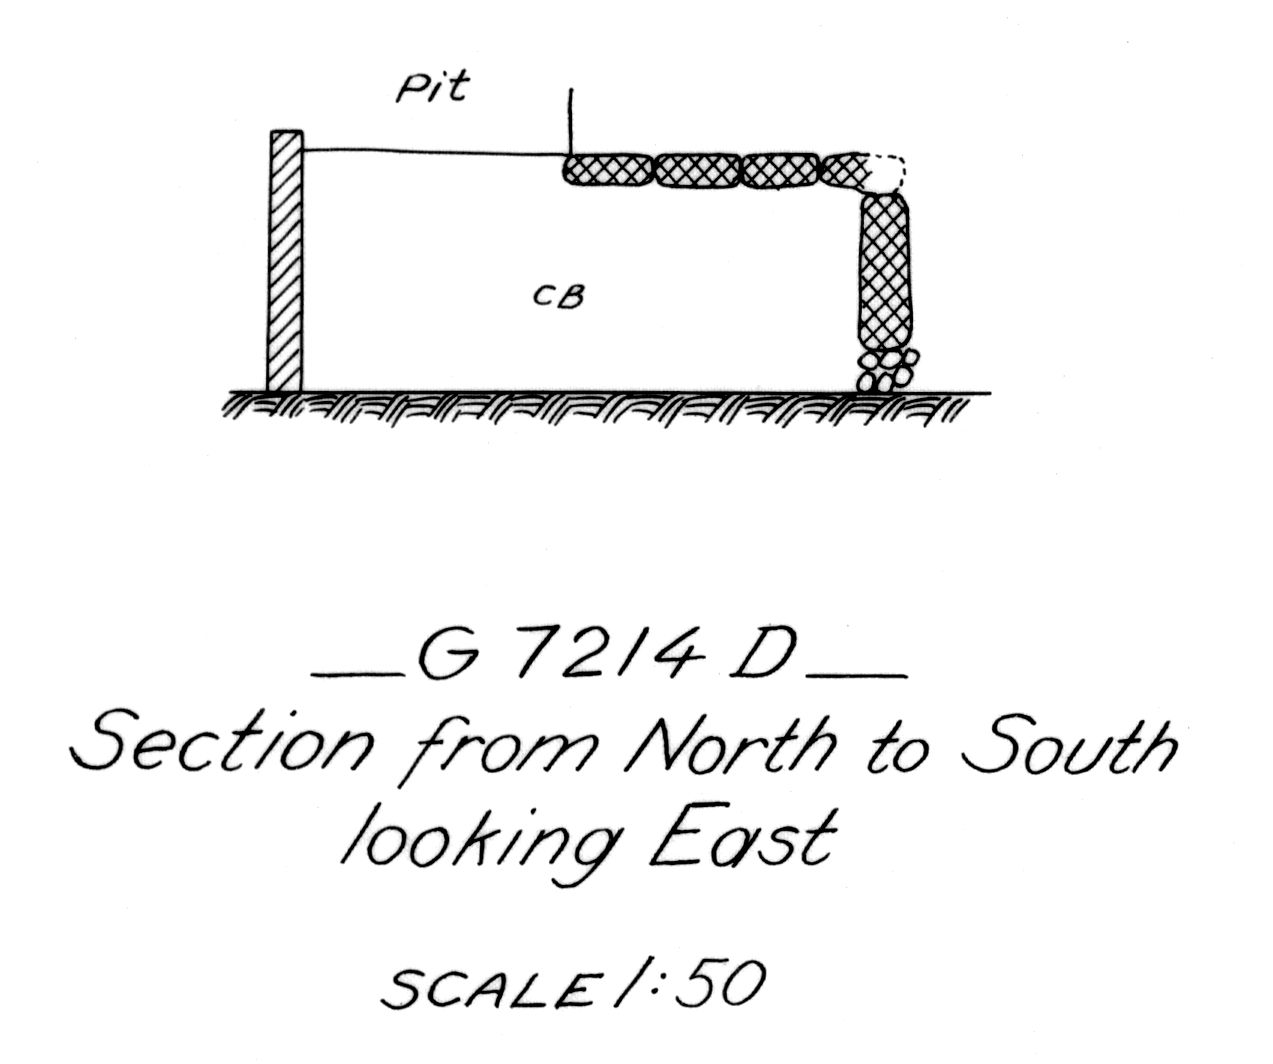 Maps and plans: G 7214, Shaft D